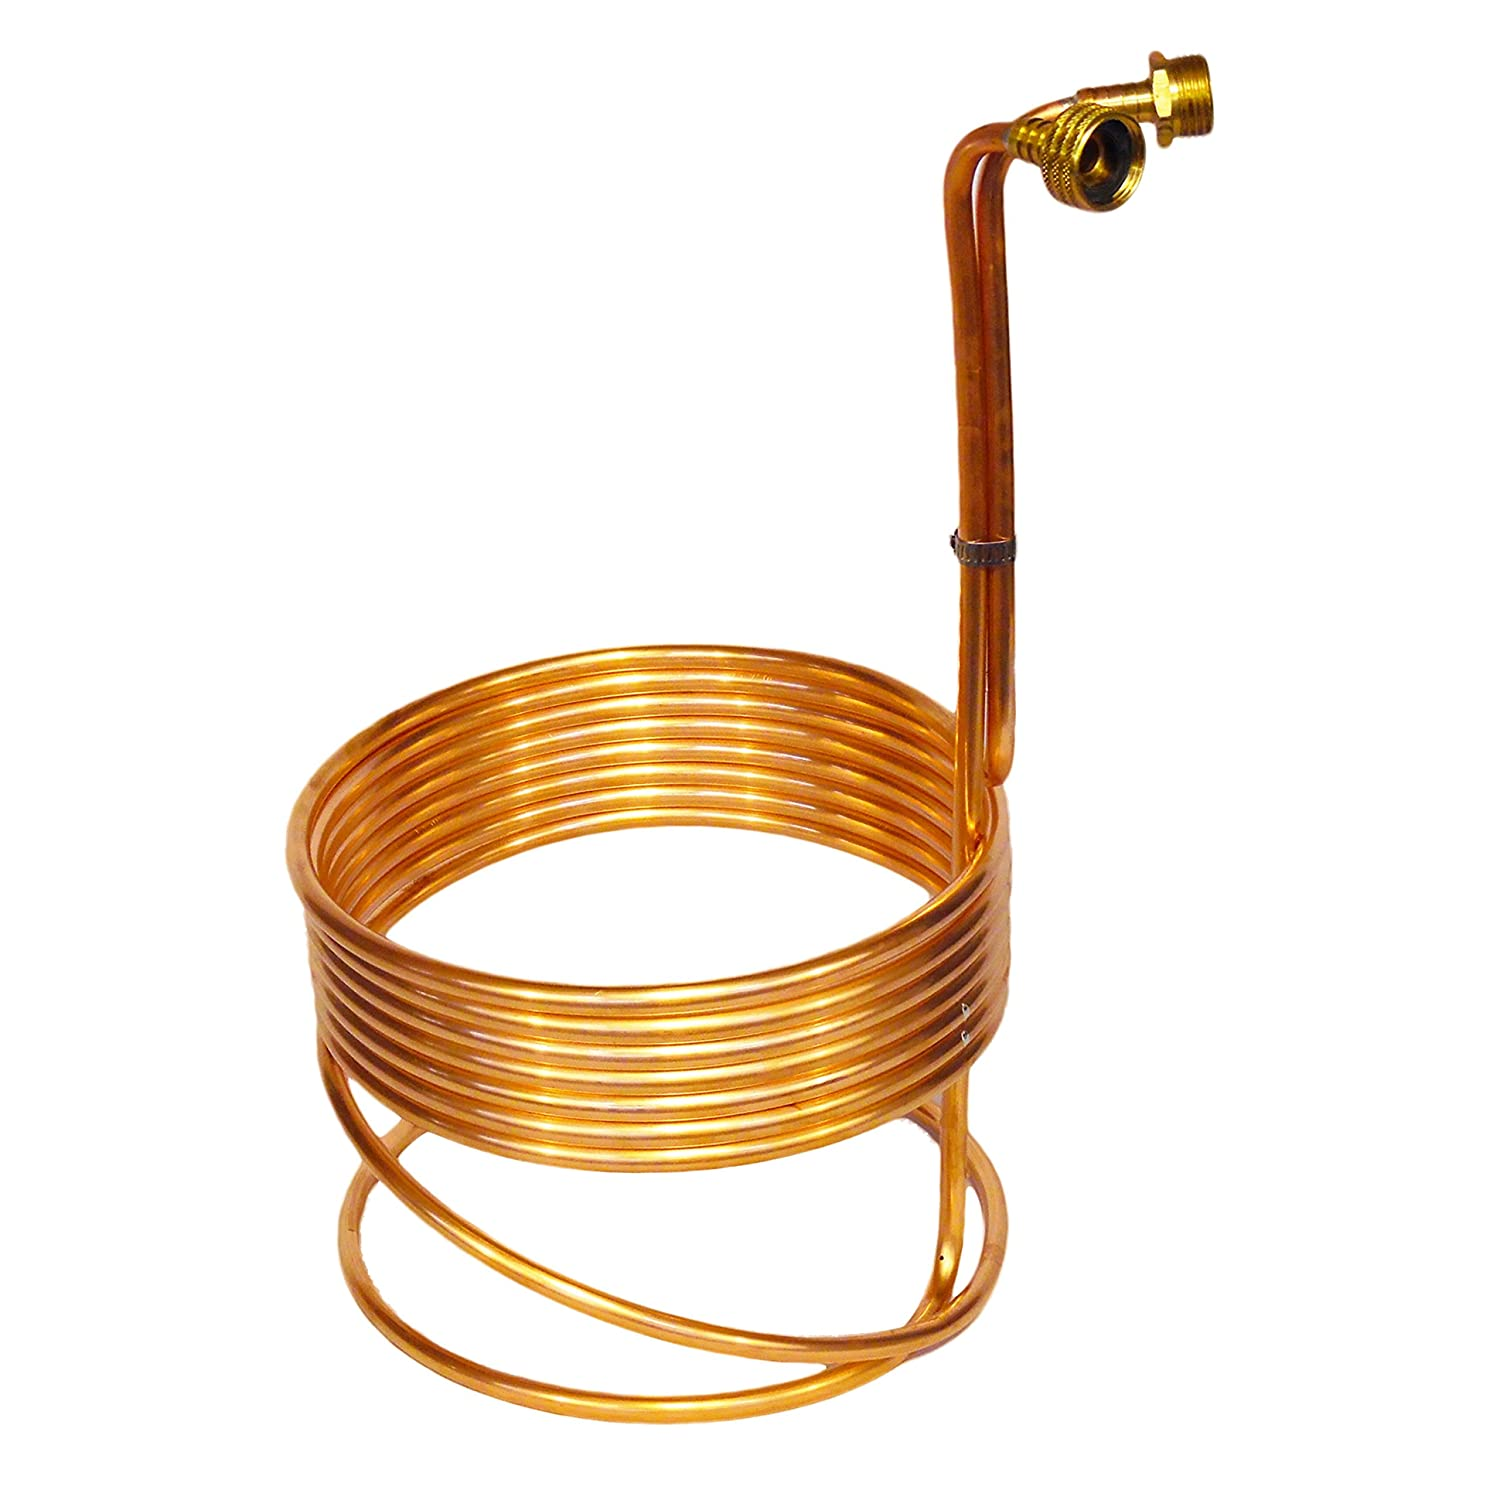 "Compact 8"" Copper Immersion Wort Chiller w/Garden Hose Fittings"